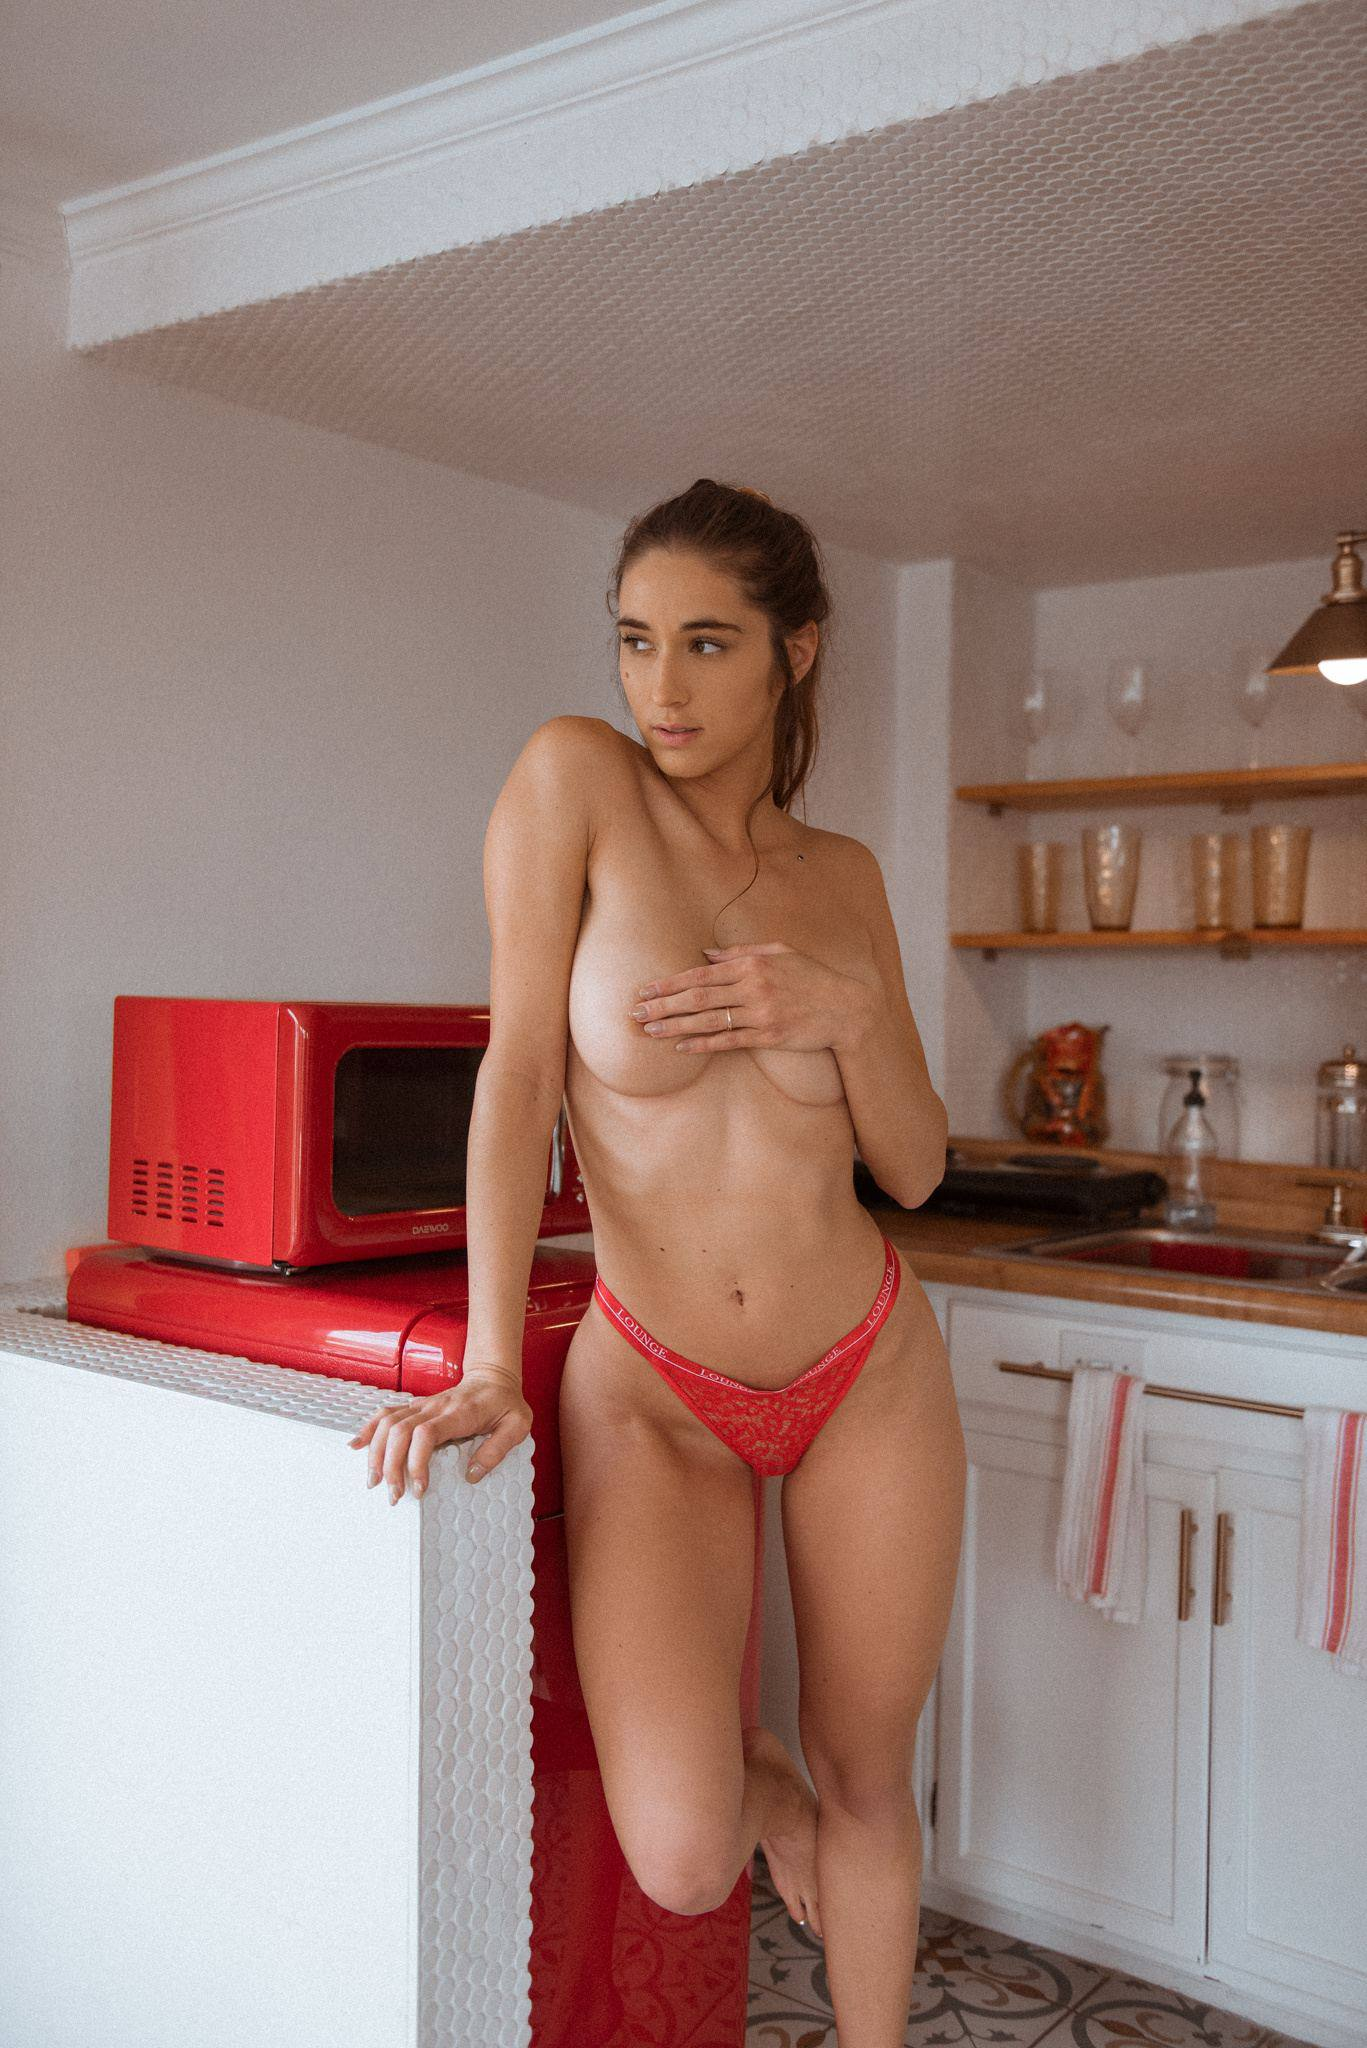 Natalie Roush – Hot Ass And Boobs In Sexy Toples Photoshoot 0002